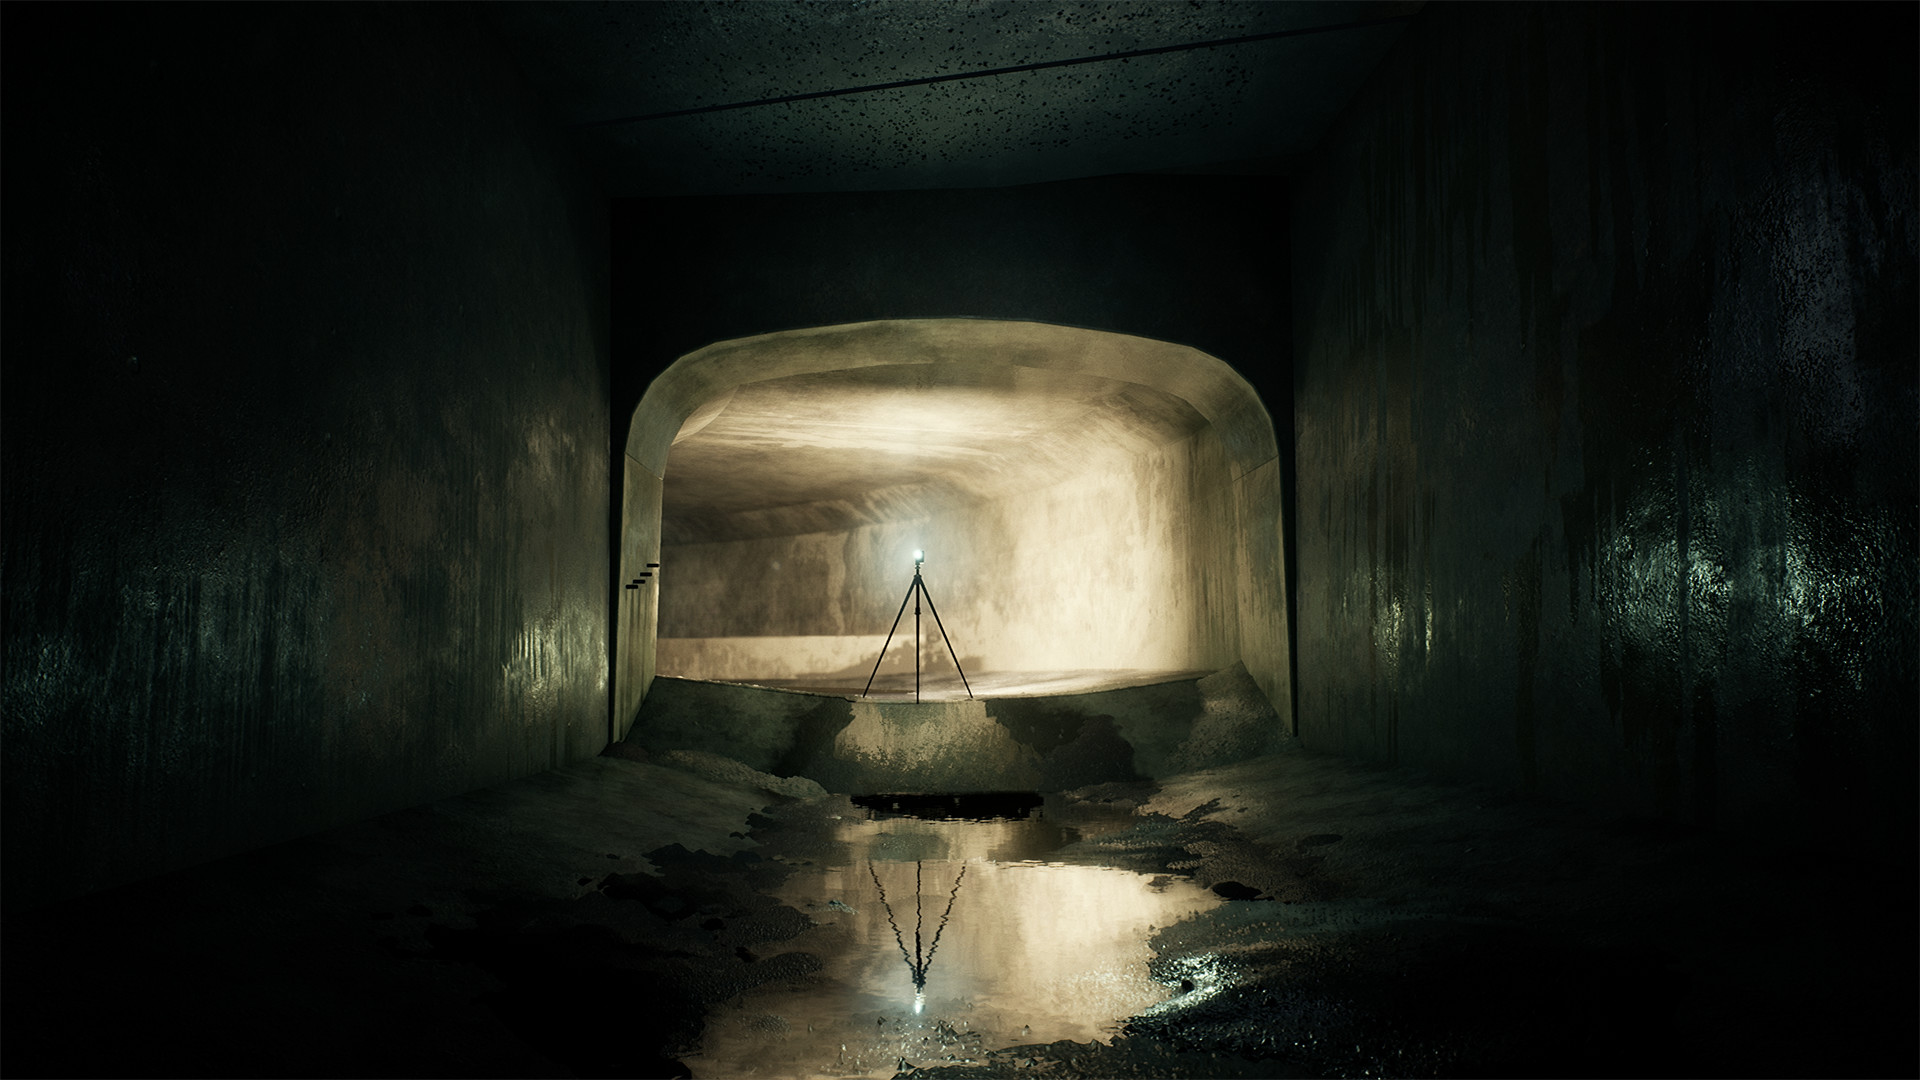 Lighting study in Unreal Engine, based on Naoya Hatakeyama's Underground / River (Tunnel Series)